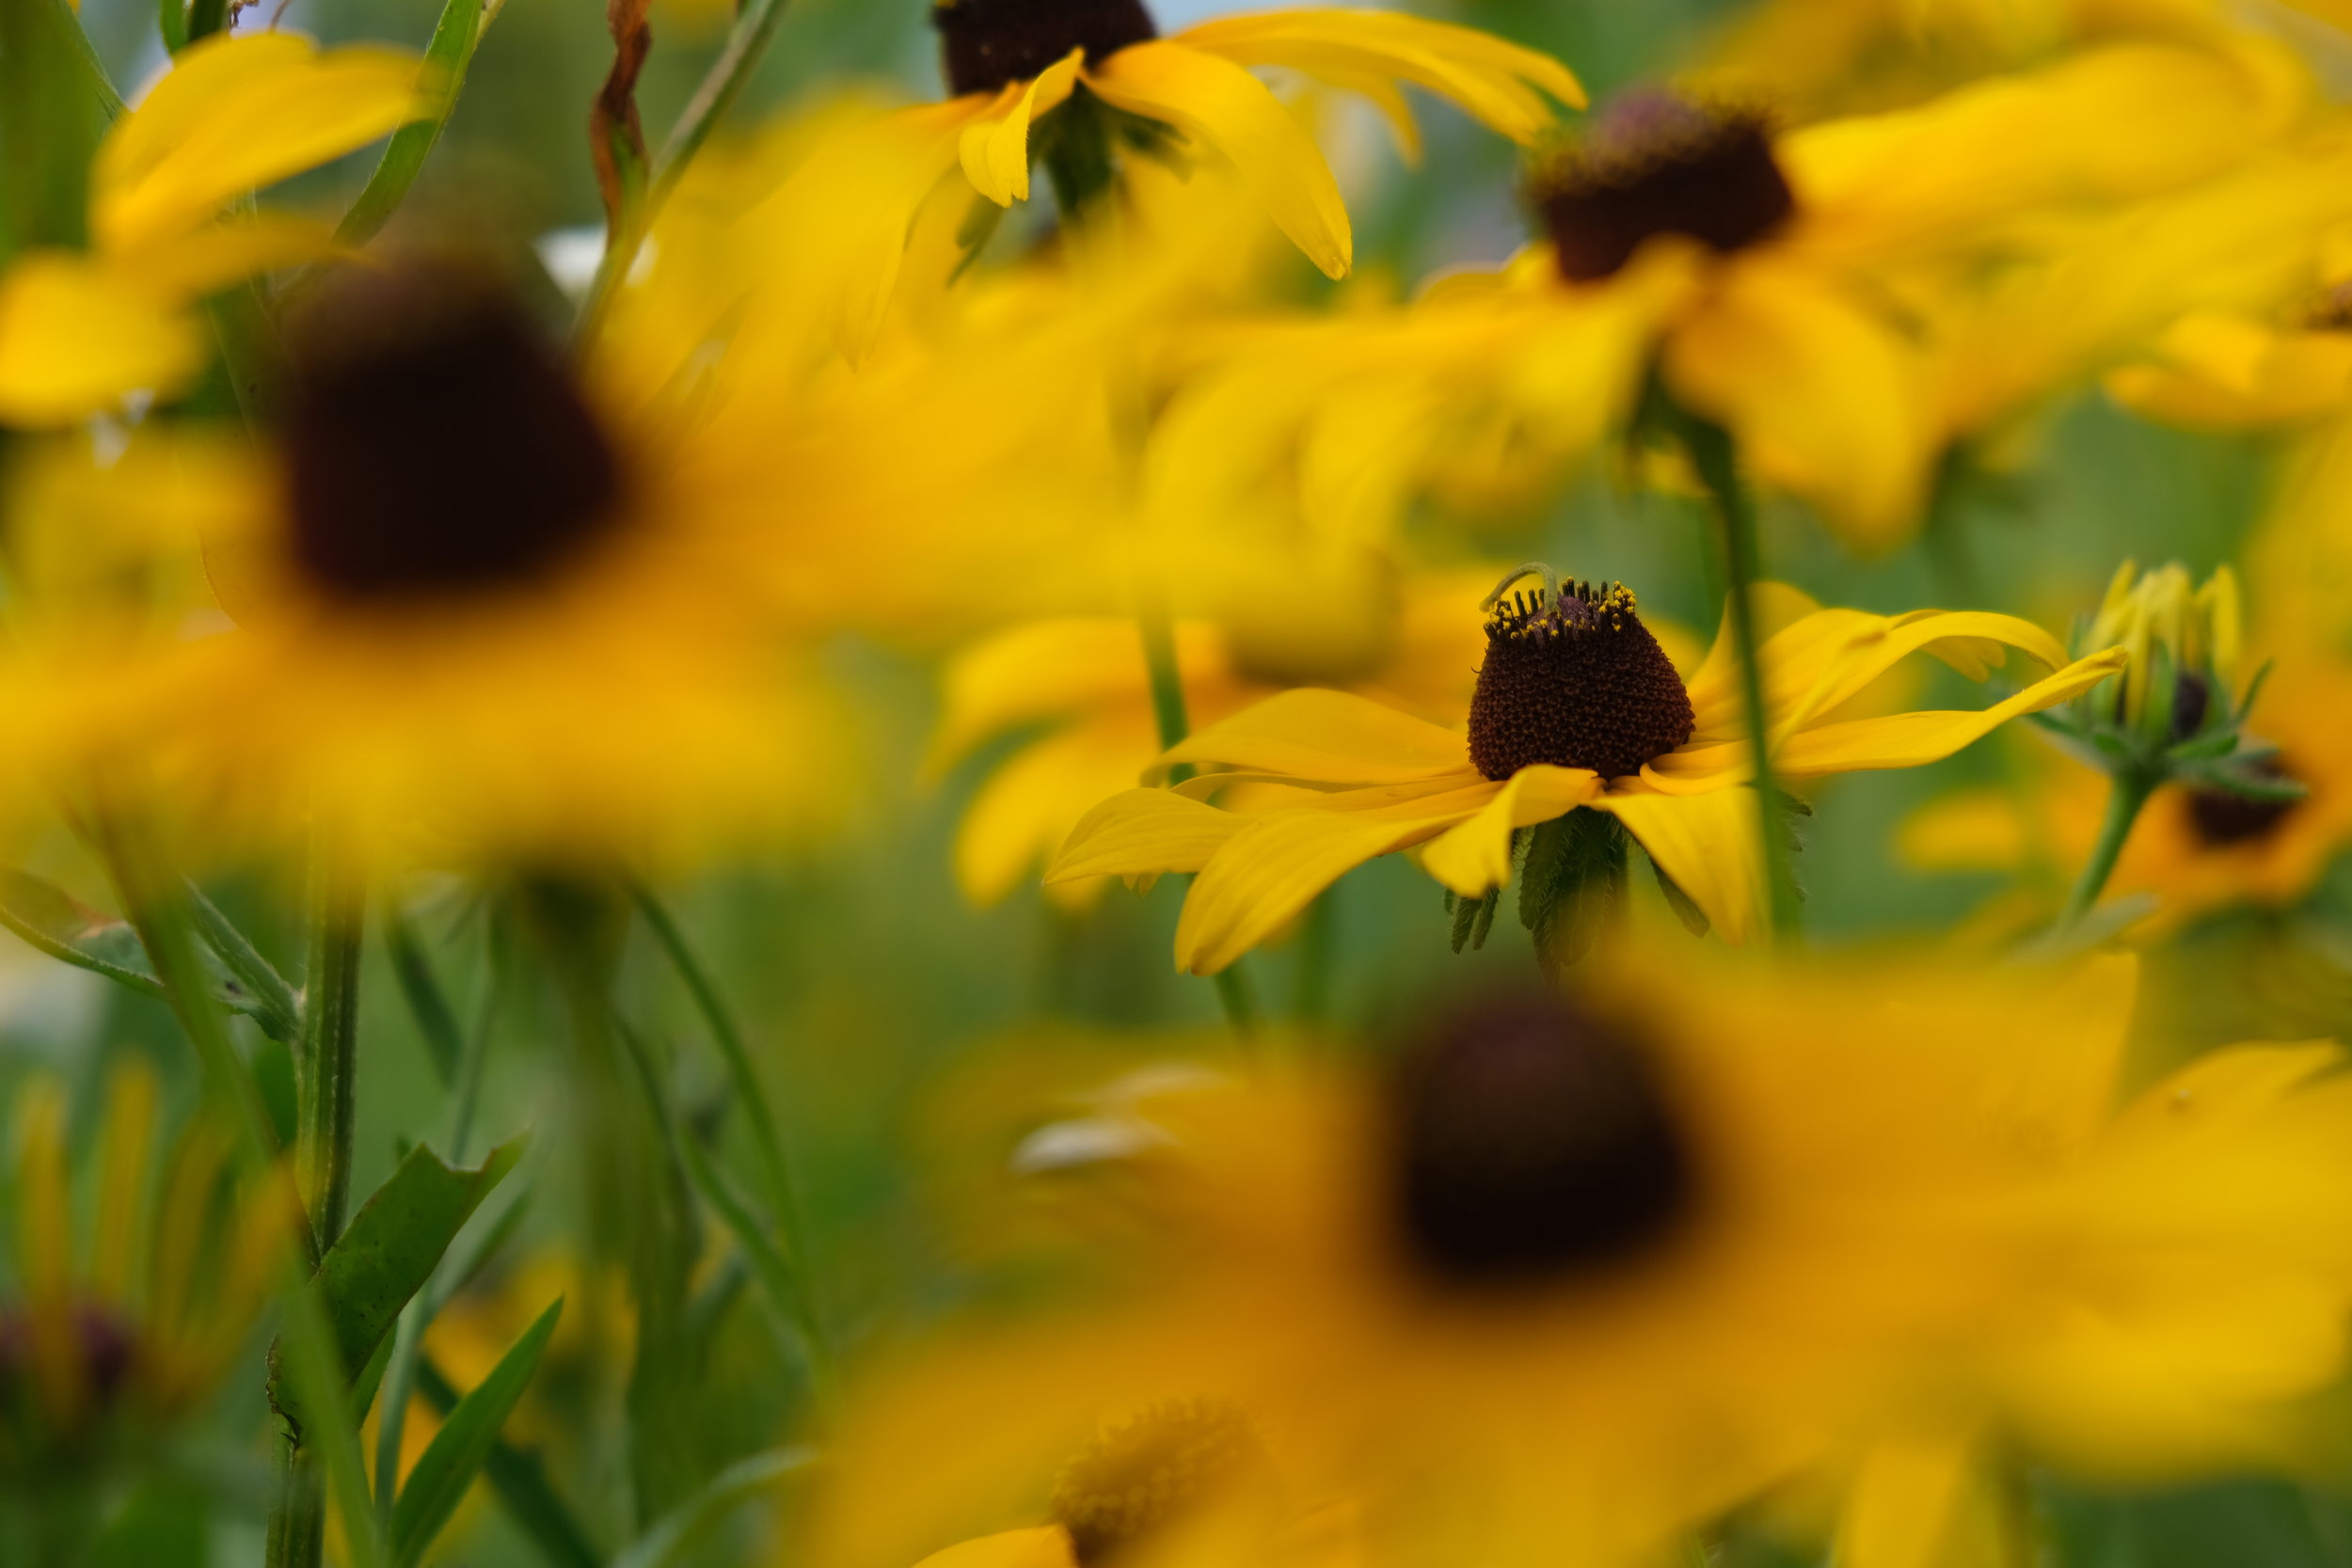 I can't see the rudbeckia for all the rudbeckia in the way